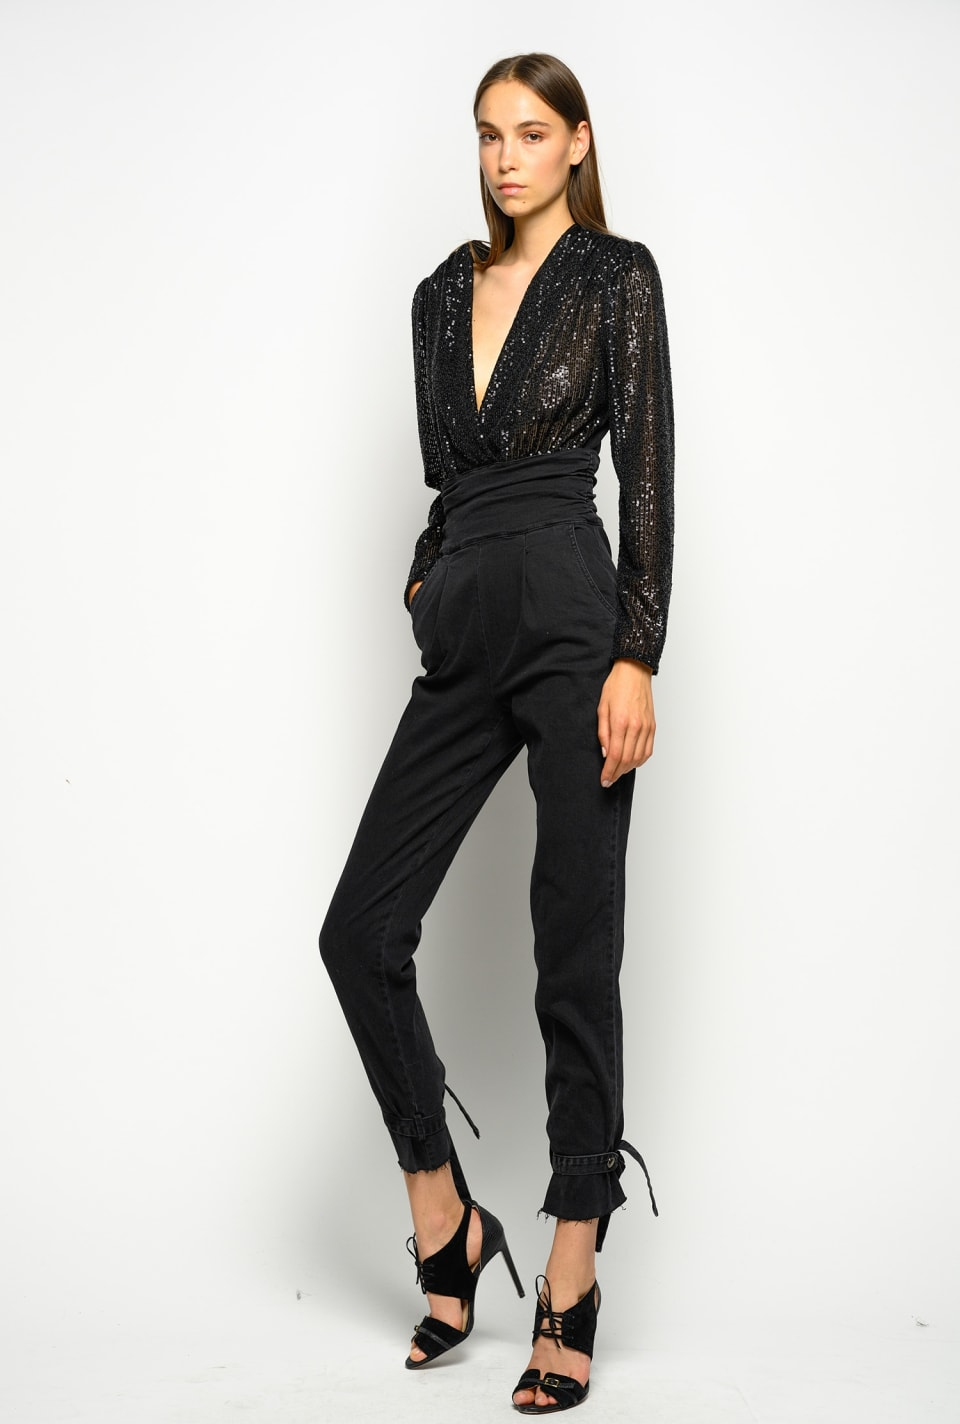 Combinaison en denim noir confortable et sequins - Pinko